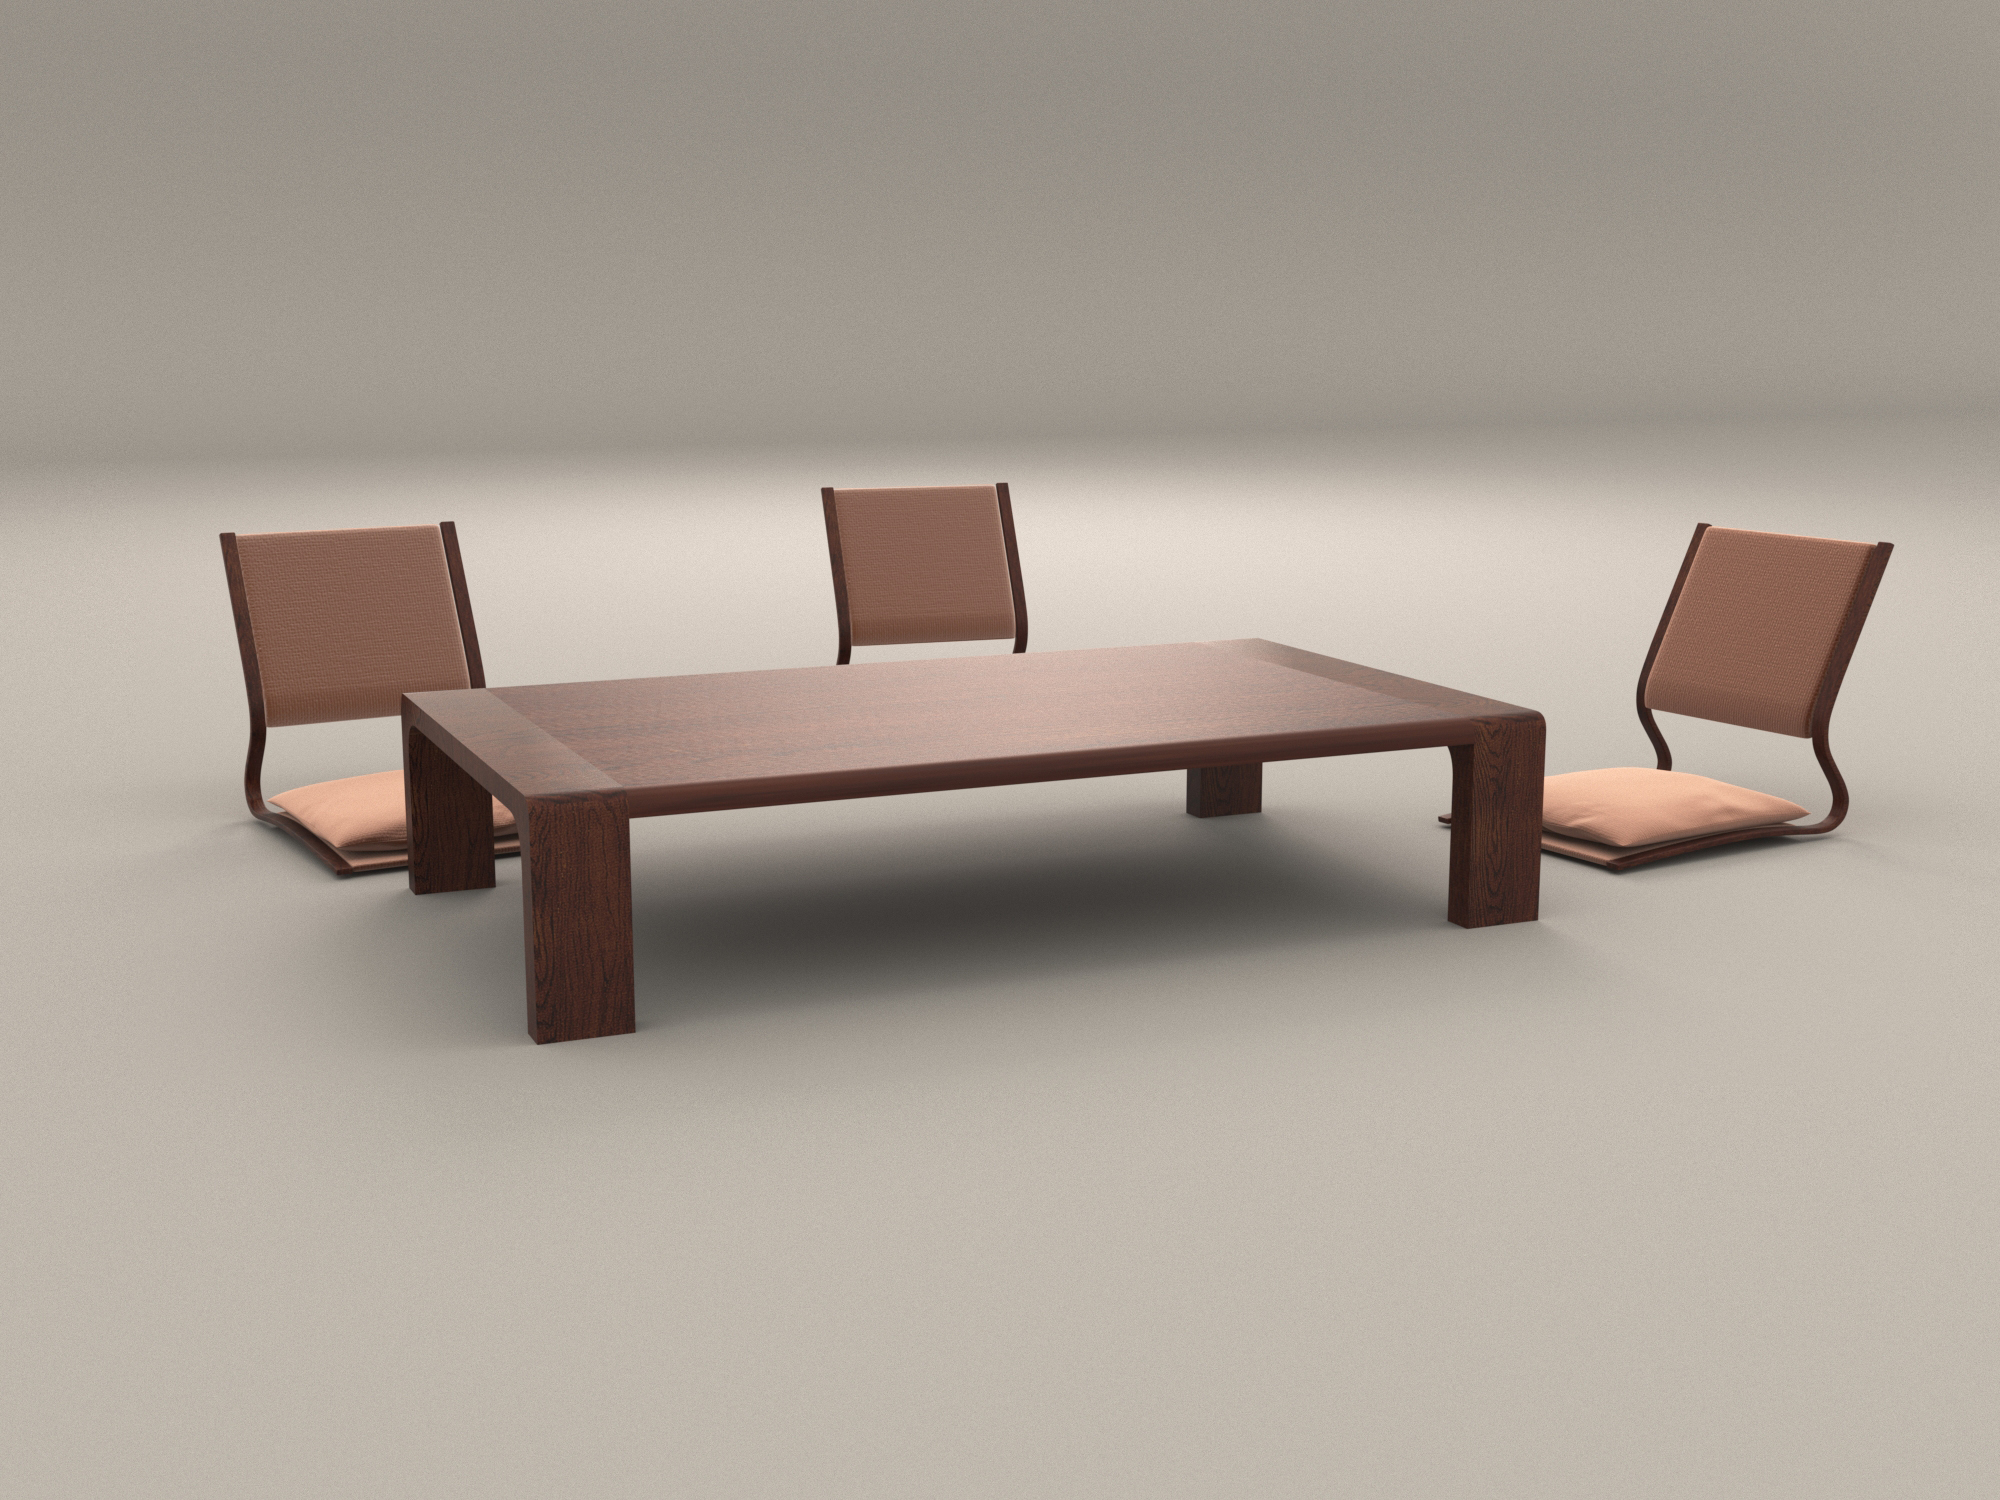 Japanese Style Low Dining Table and Chair - 3DOcean Item for Sale  1 1  1.jpg ...